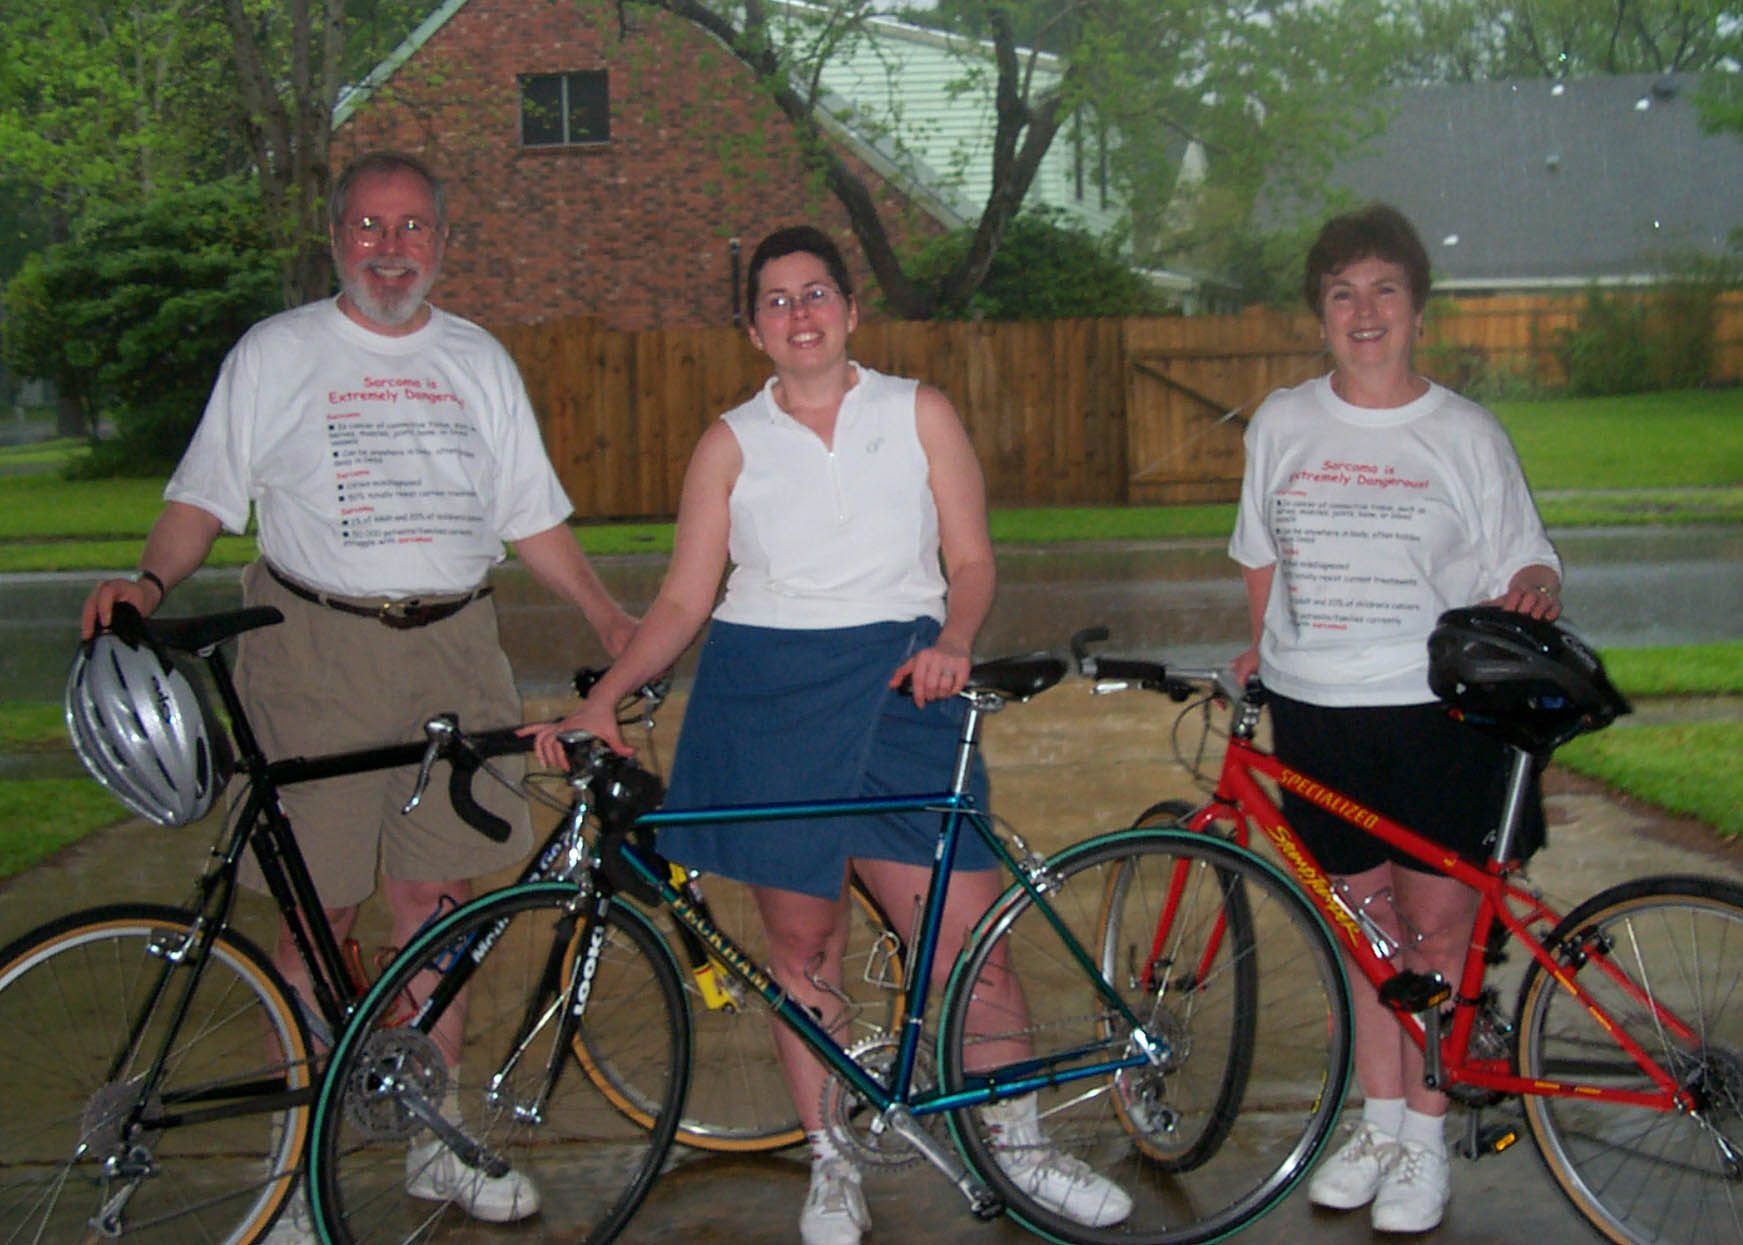 Bruce Shriver, from left poses with daughter Liddy and wife Beverly before beginning the Cycle Zydeco Bike Tour, their first bike ride together as Team Sarcoma. Photo courtesy of Bruce and Beverly Shriver.